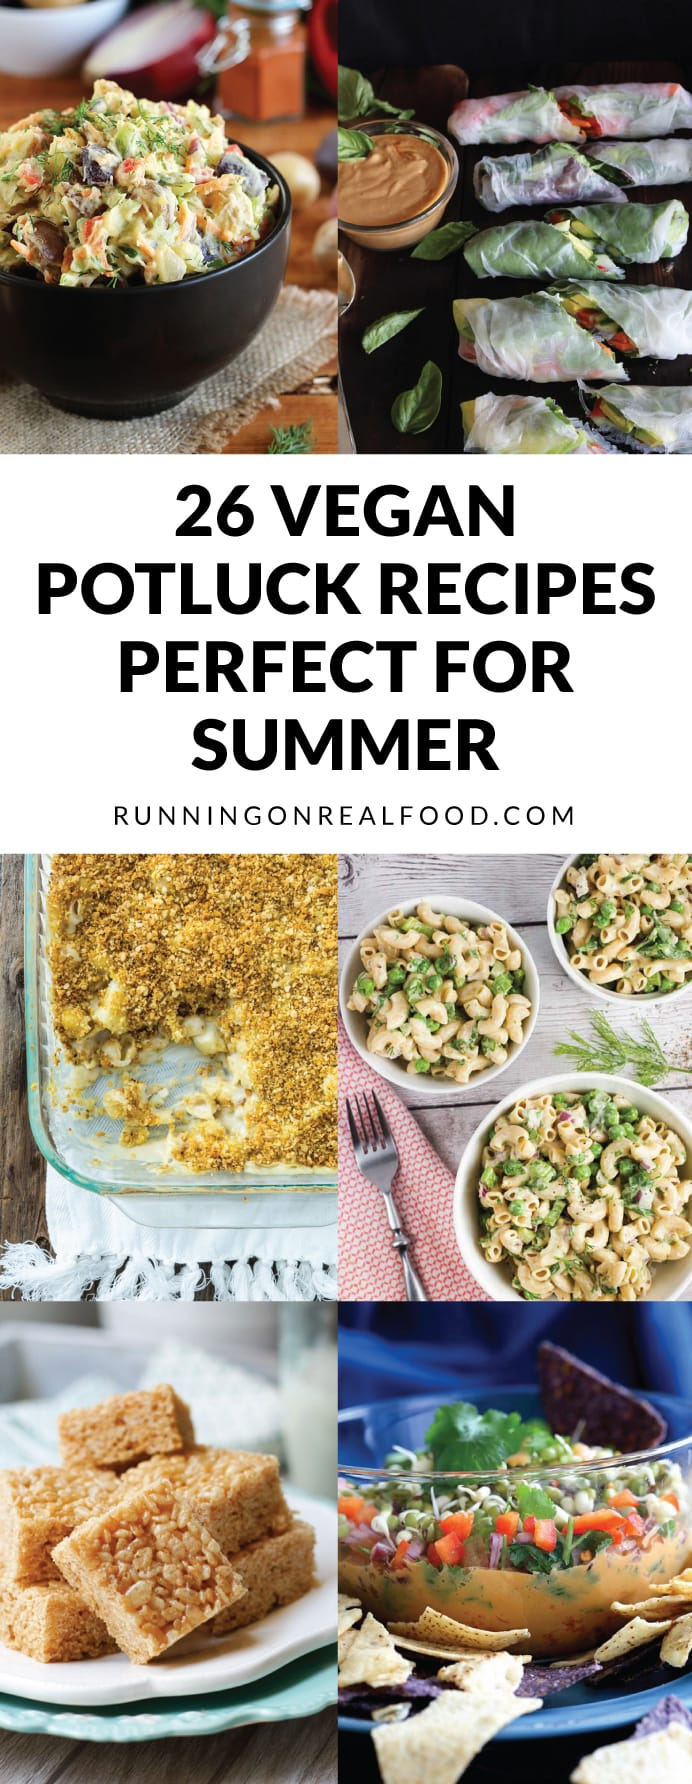 These 26 vegan potluck recipes are perfect for your next summer bbq, beach day or picnic! Delicious, easy to make, healthy and sure to please a crowd. Mains, dips, sandwiches and wraps, snacks, sides, salads and desserts included.